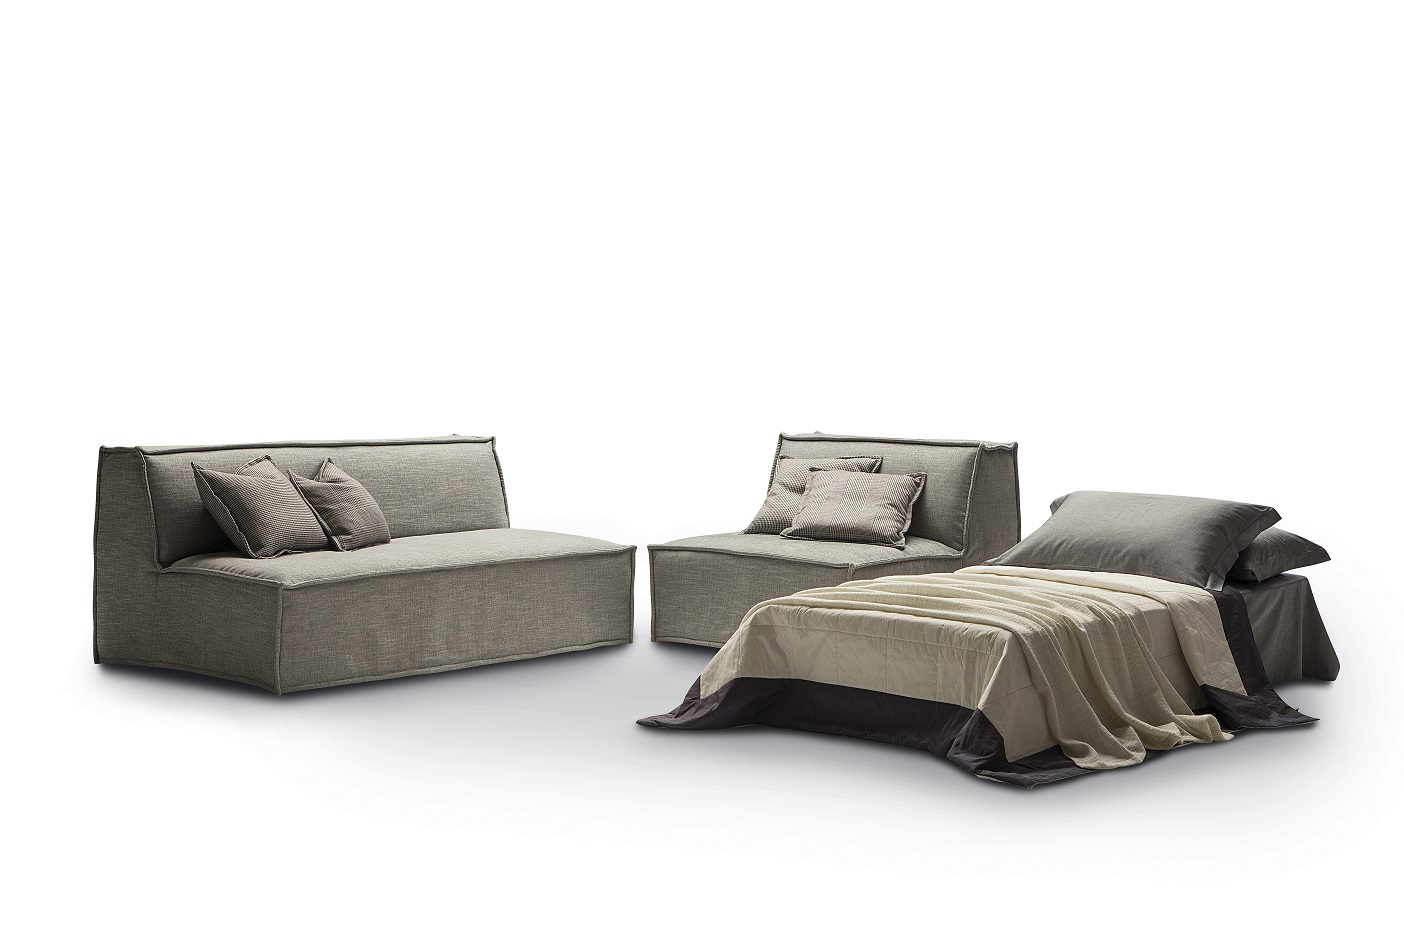 Fauteuil convertible Tommy Milano Bedding